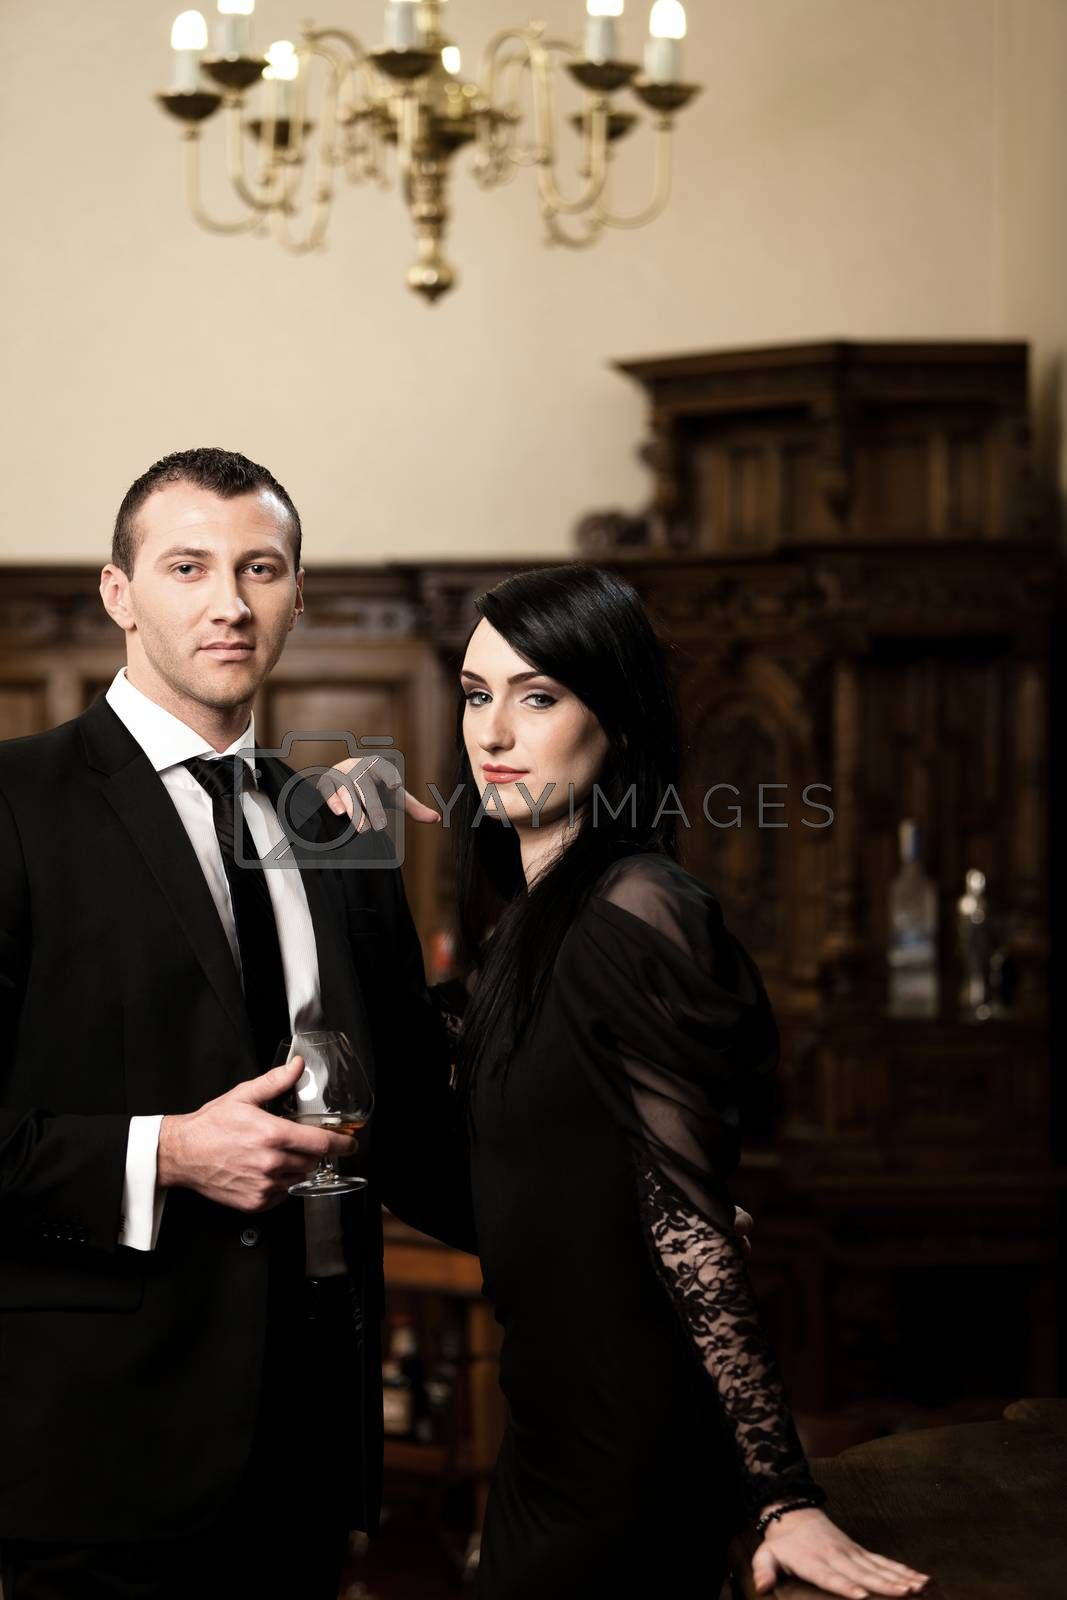 Attractive business couple smiling while is having a drink. Please see more images from the same shoot.